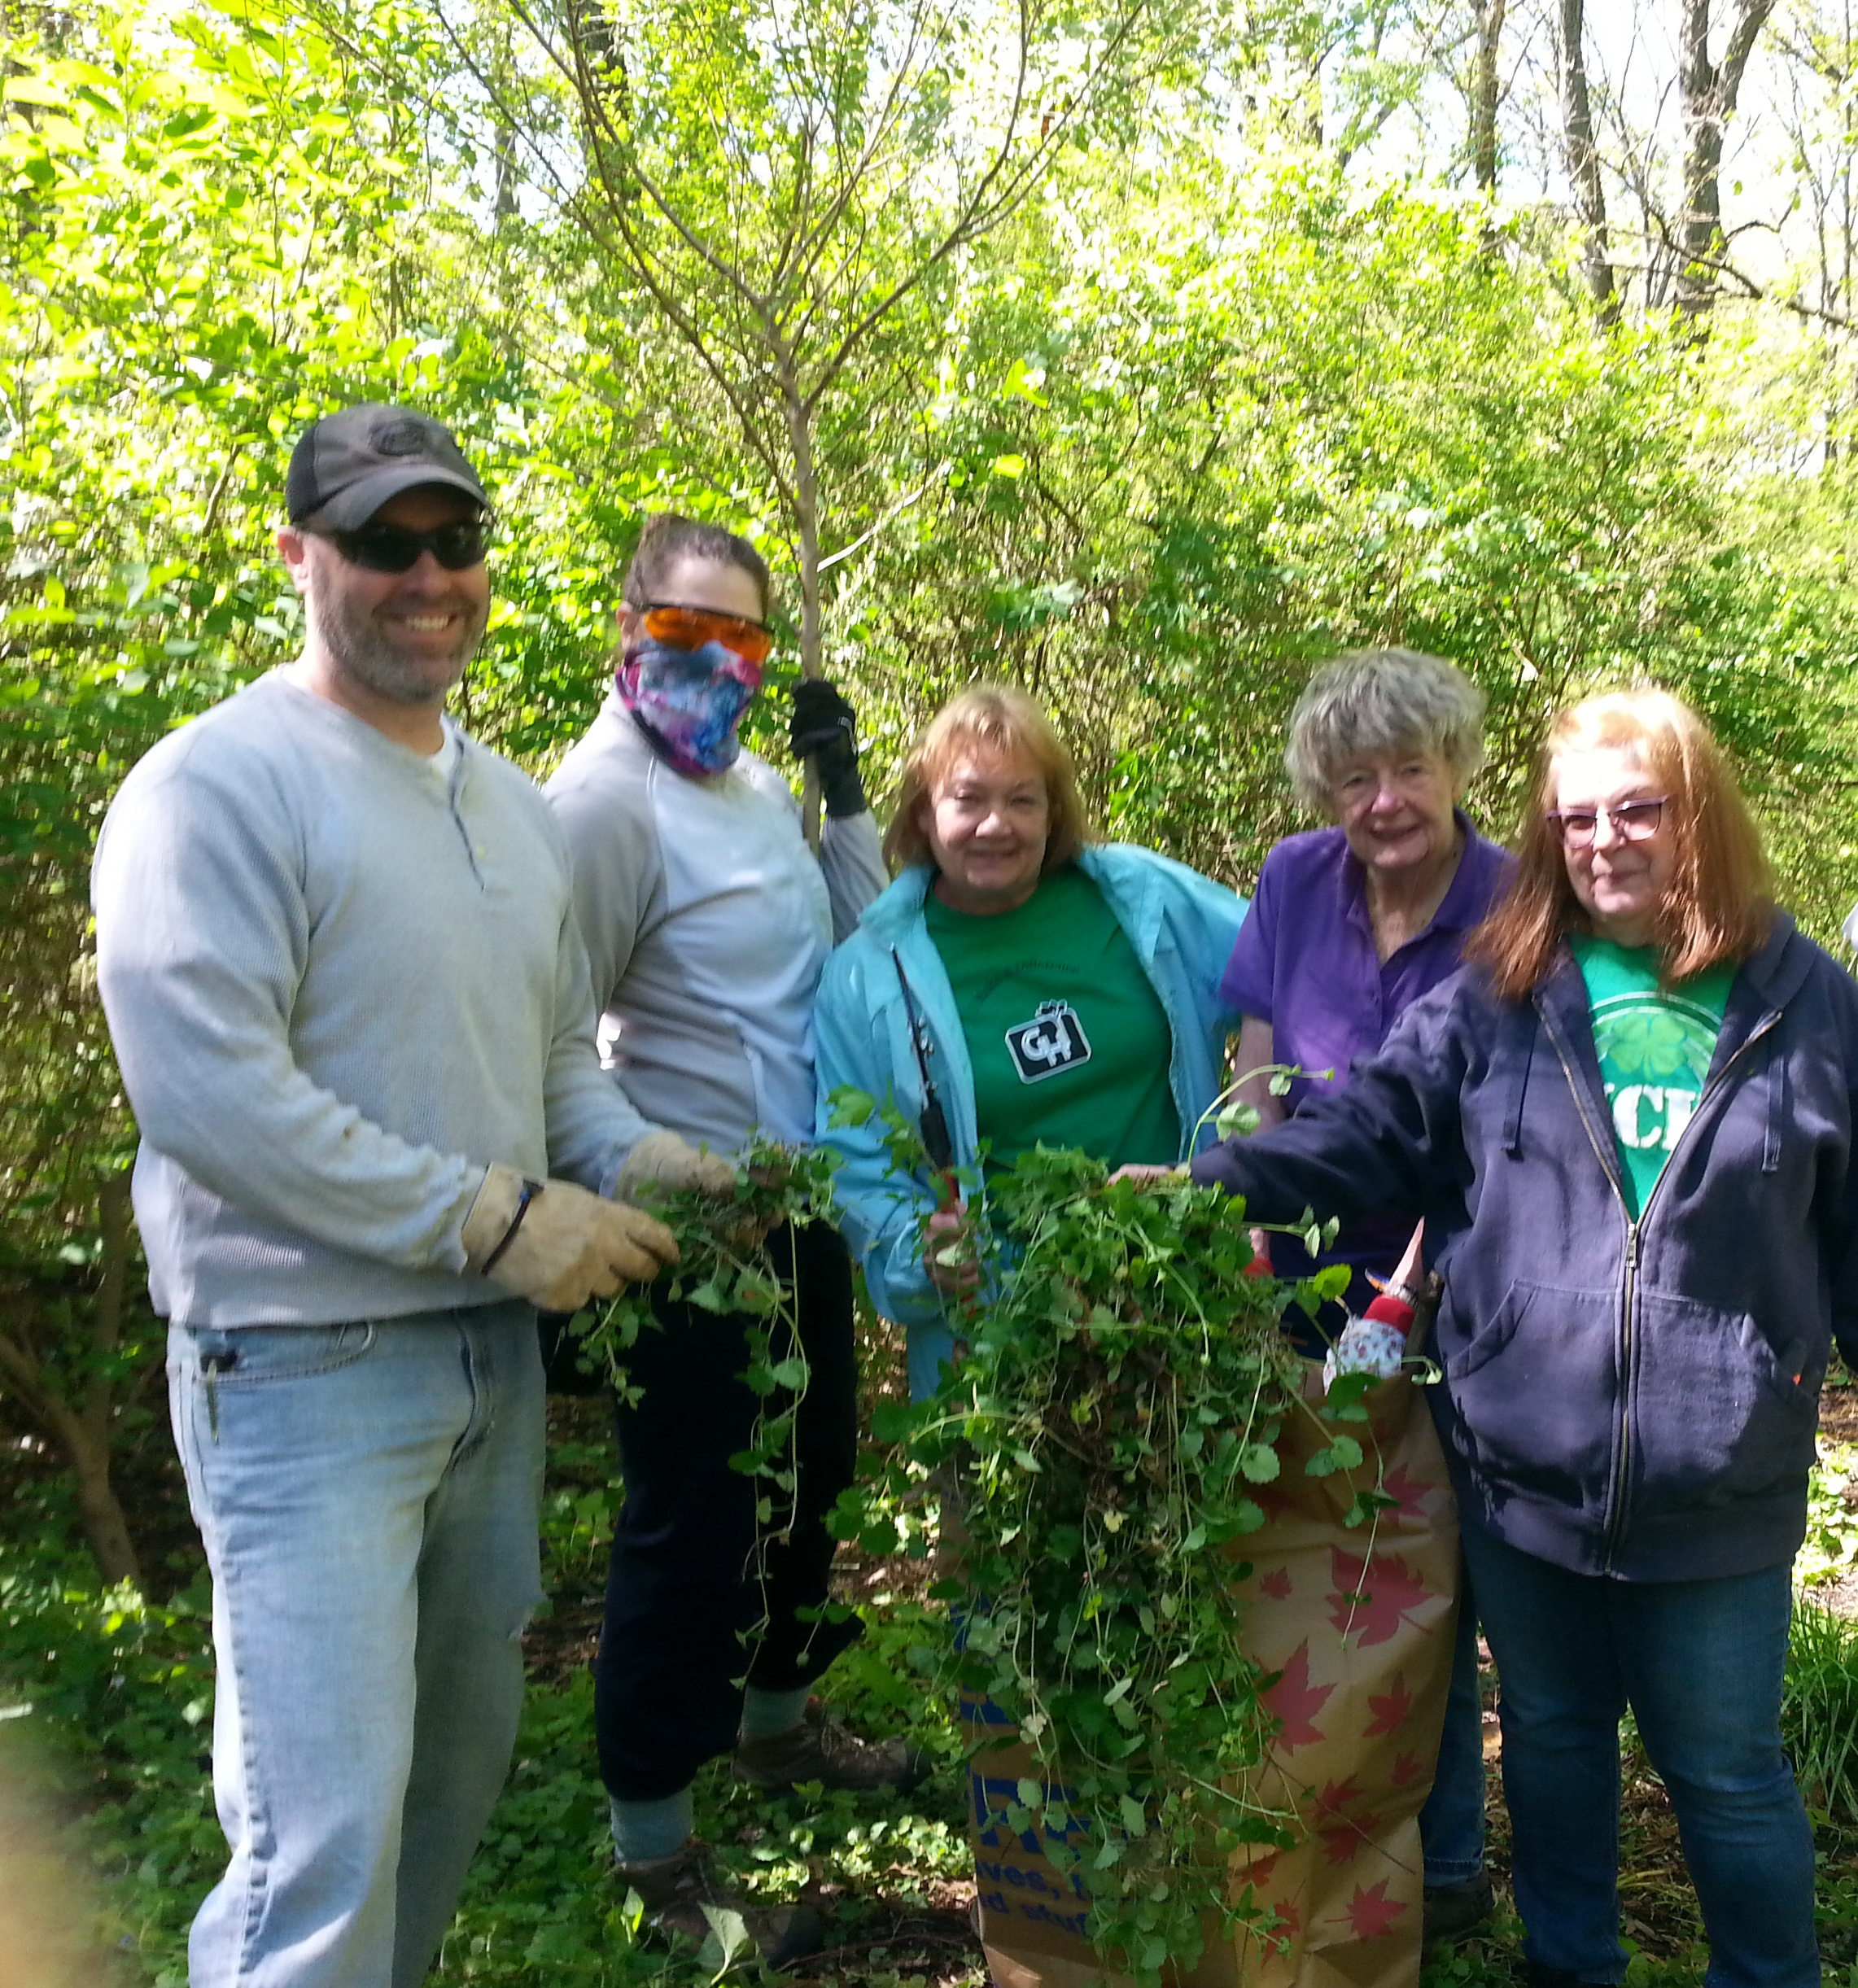 A group photo of Beth Kuser-Olsen and others as they clean up a forest